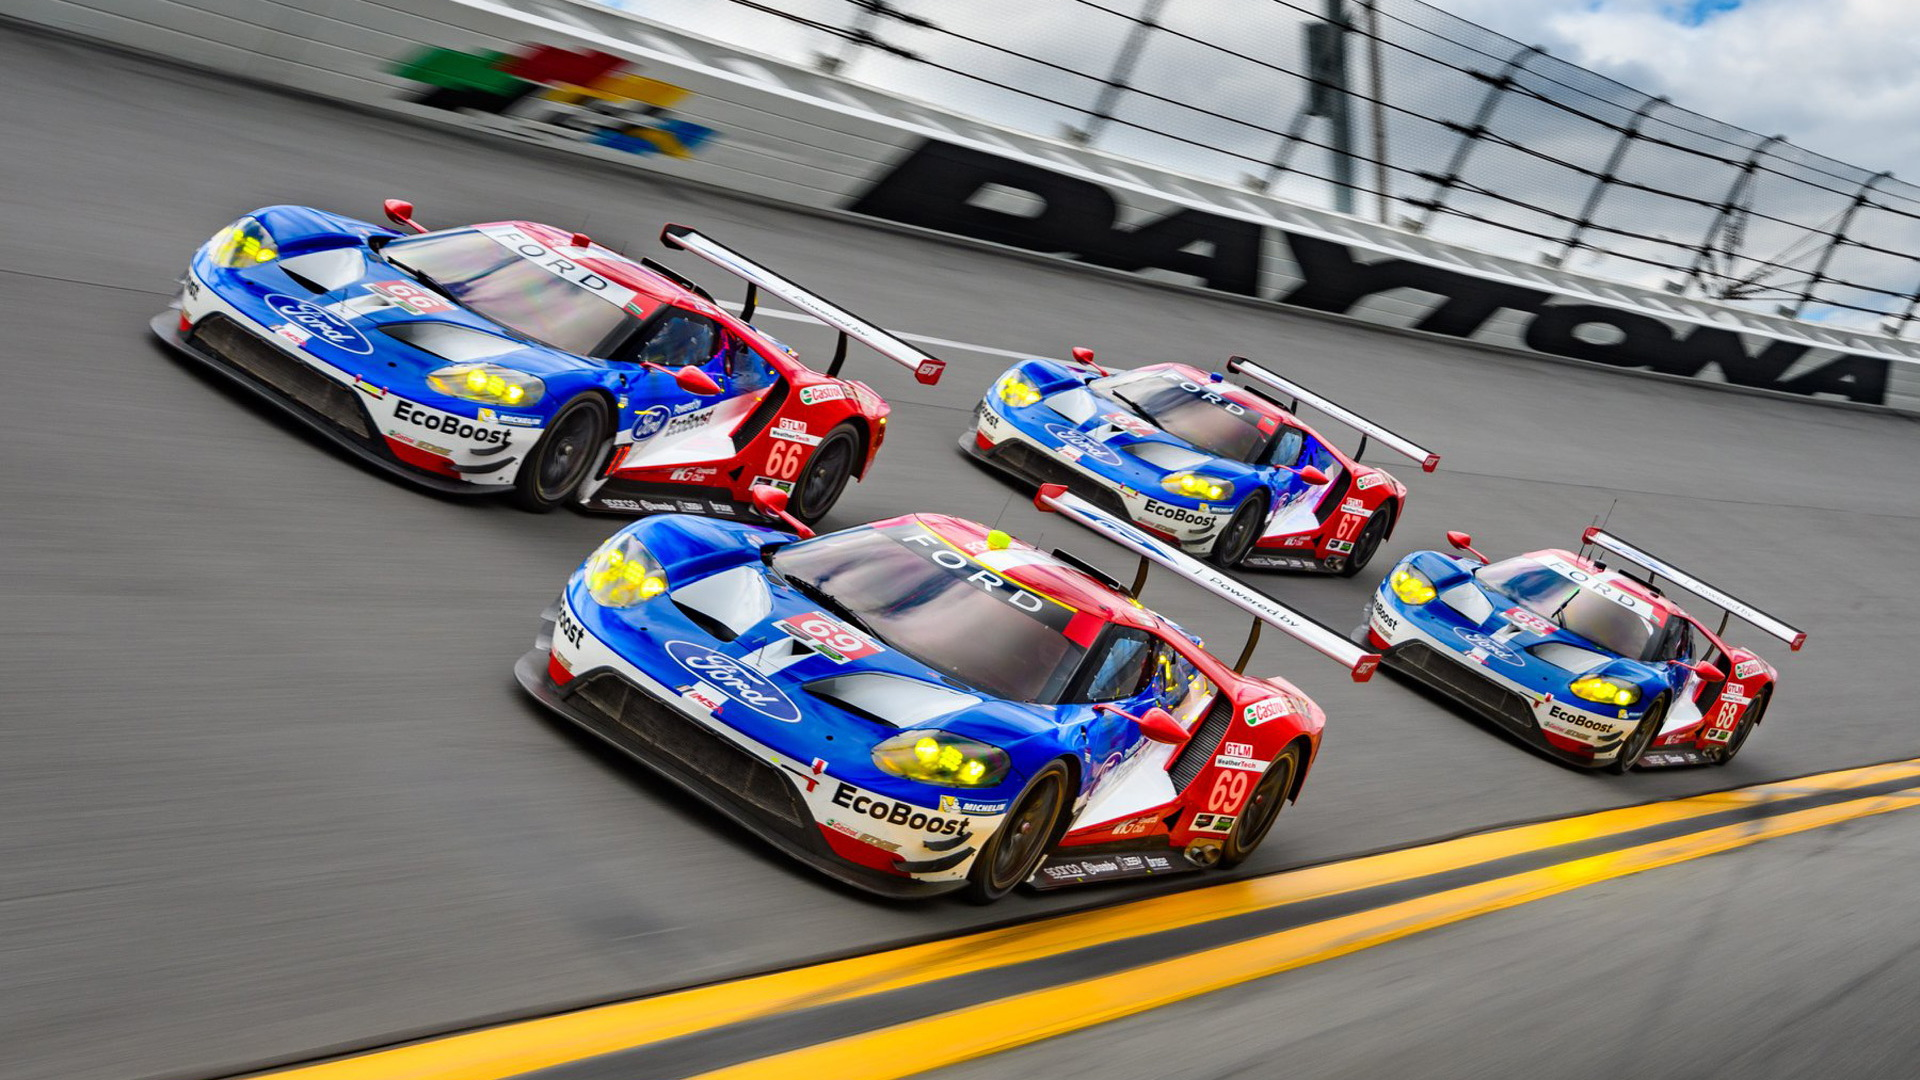 Ford GT racing program comes to a close